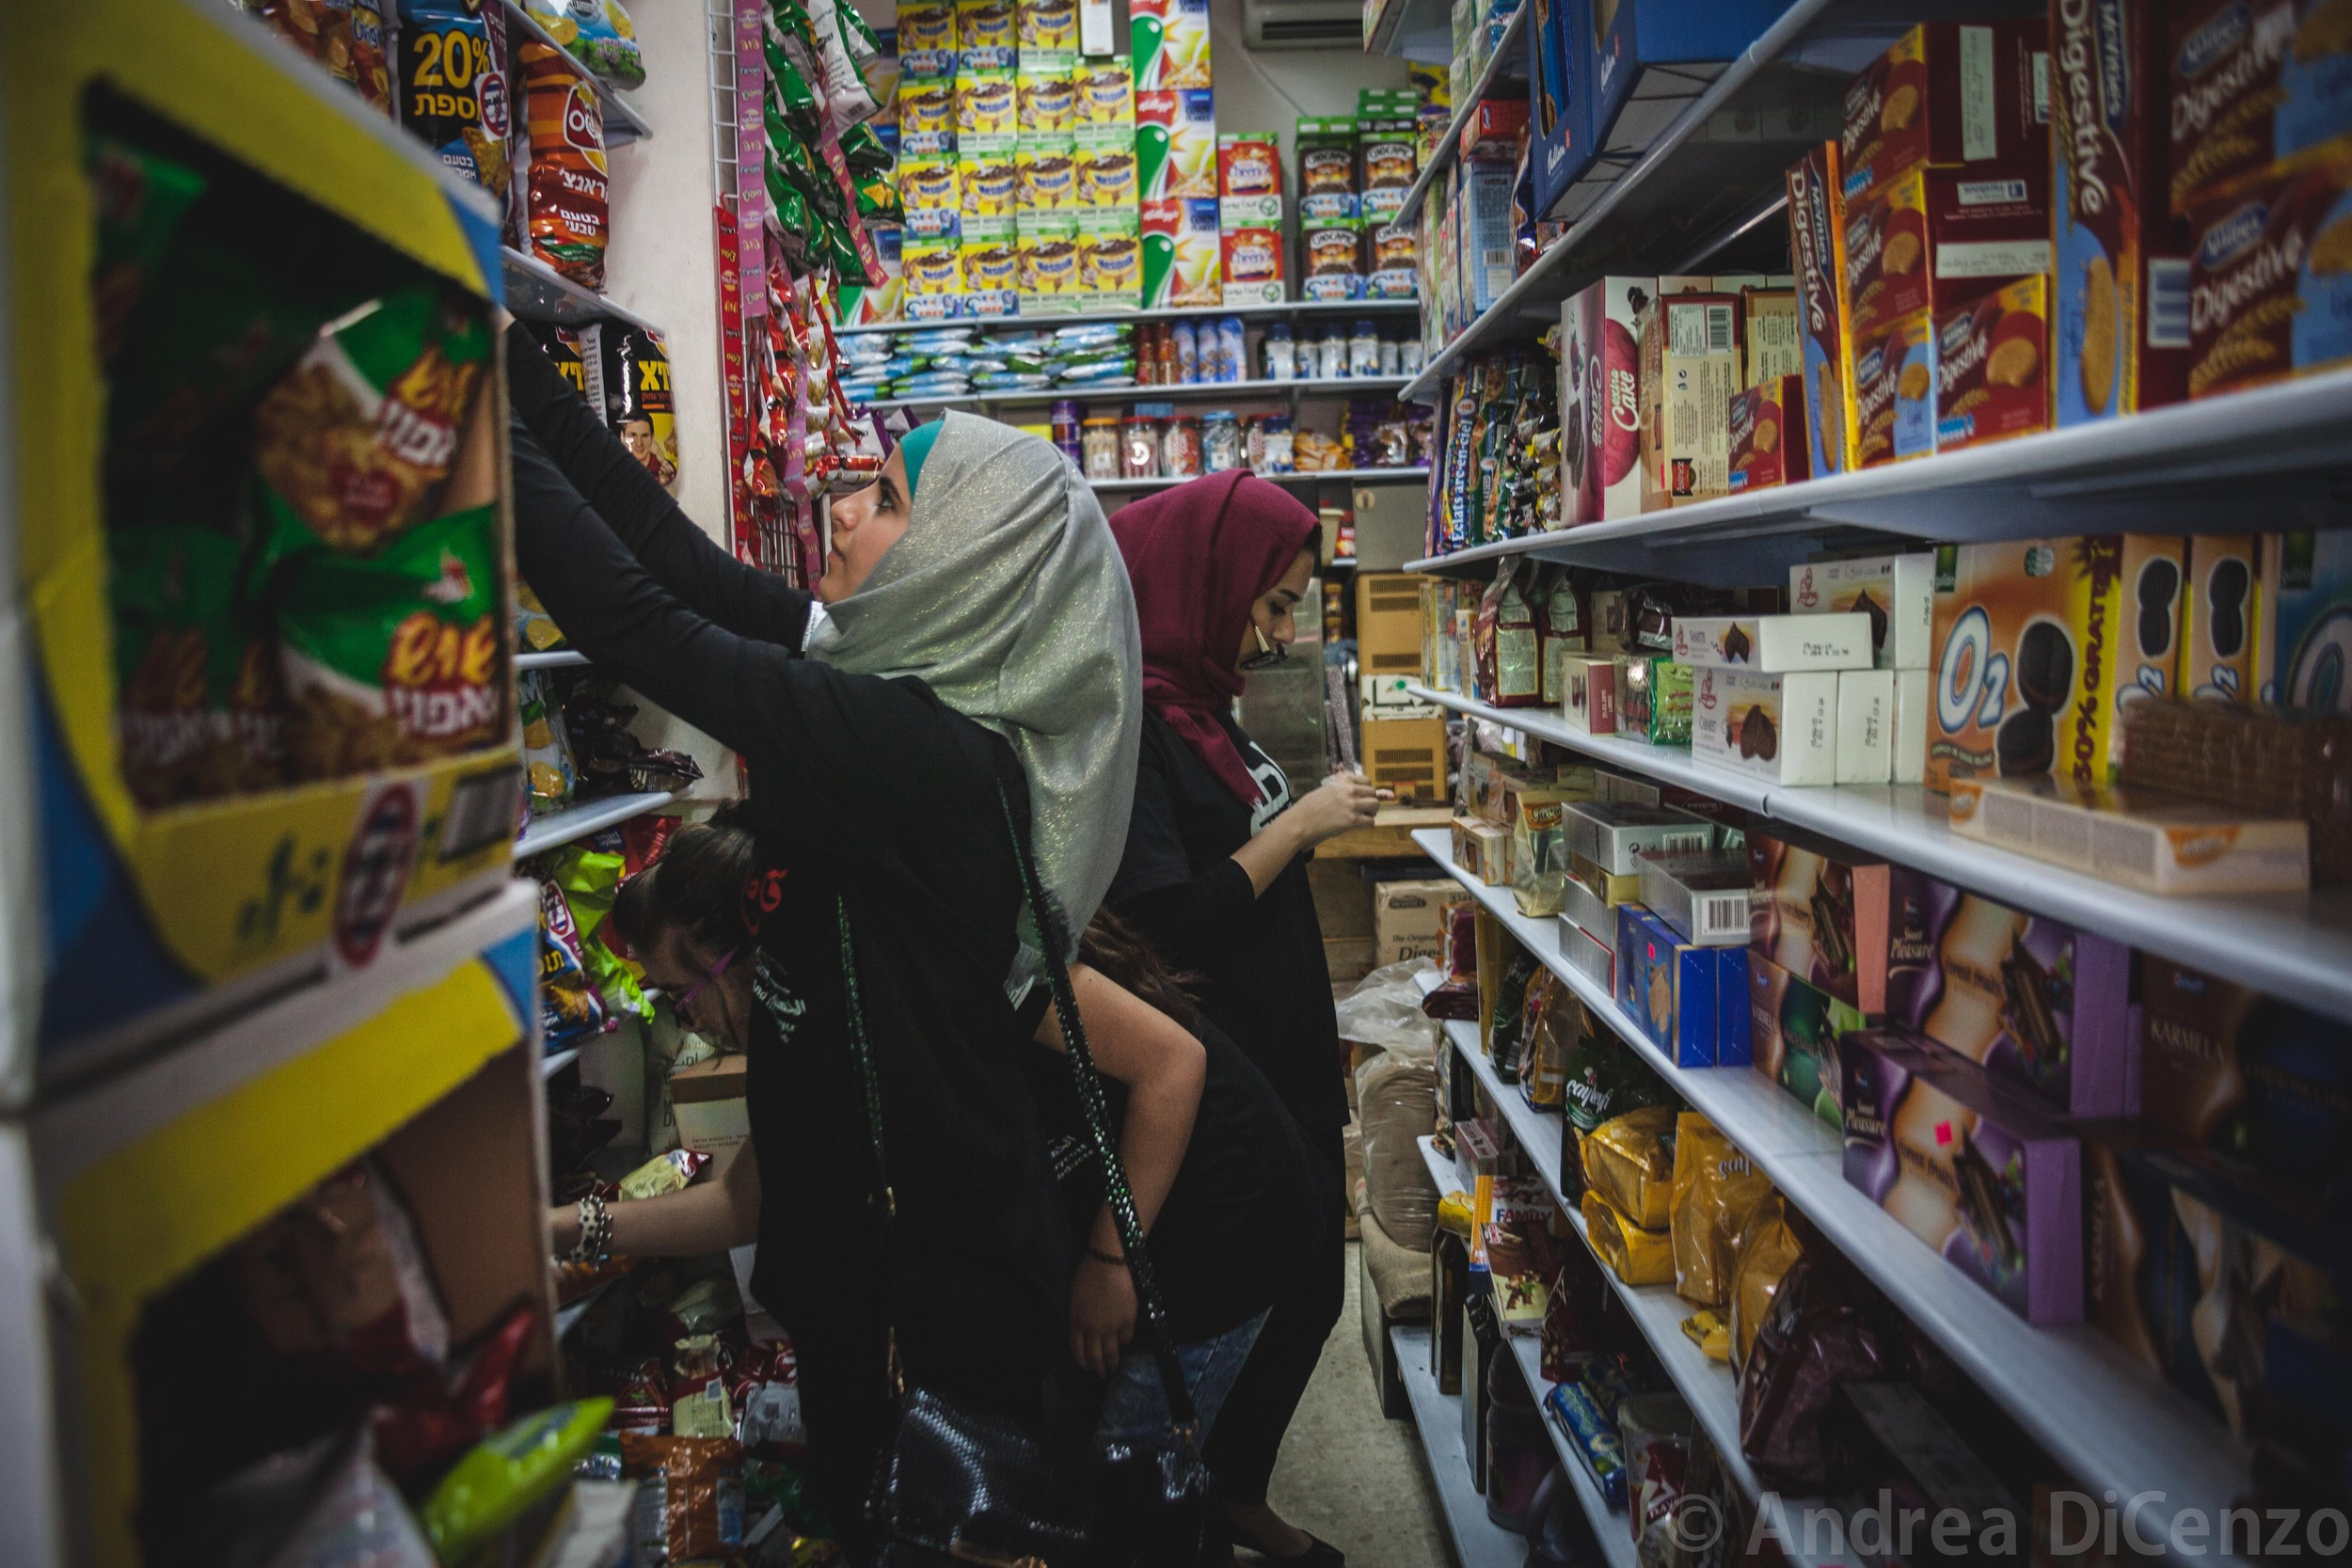 Palestinian women put stickers on Israeli products in Bethlehem, West Bank as part of the Palestinian boycott movement.